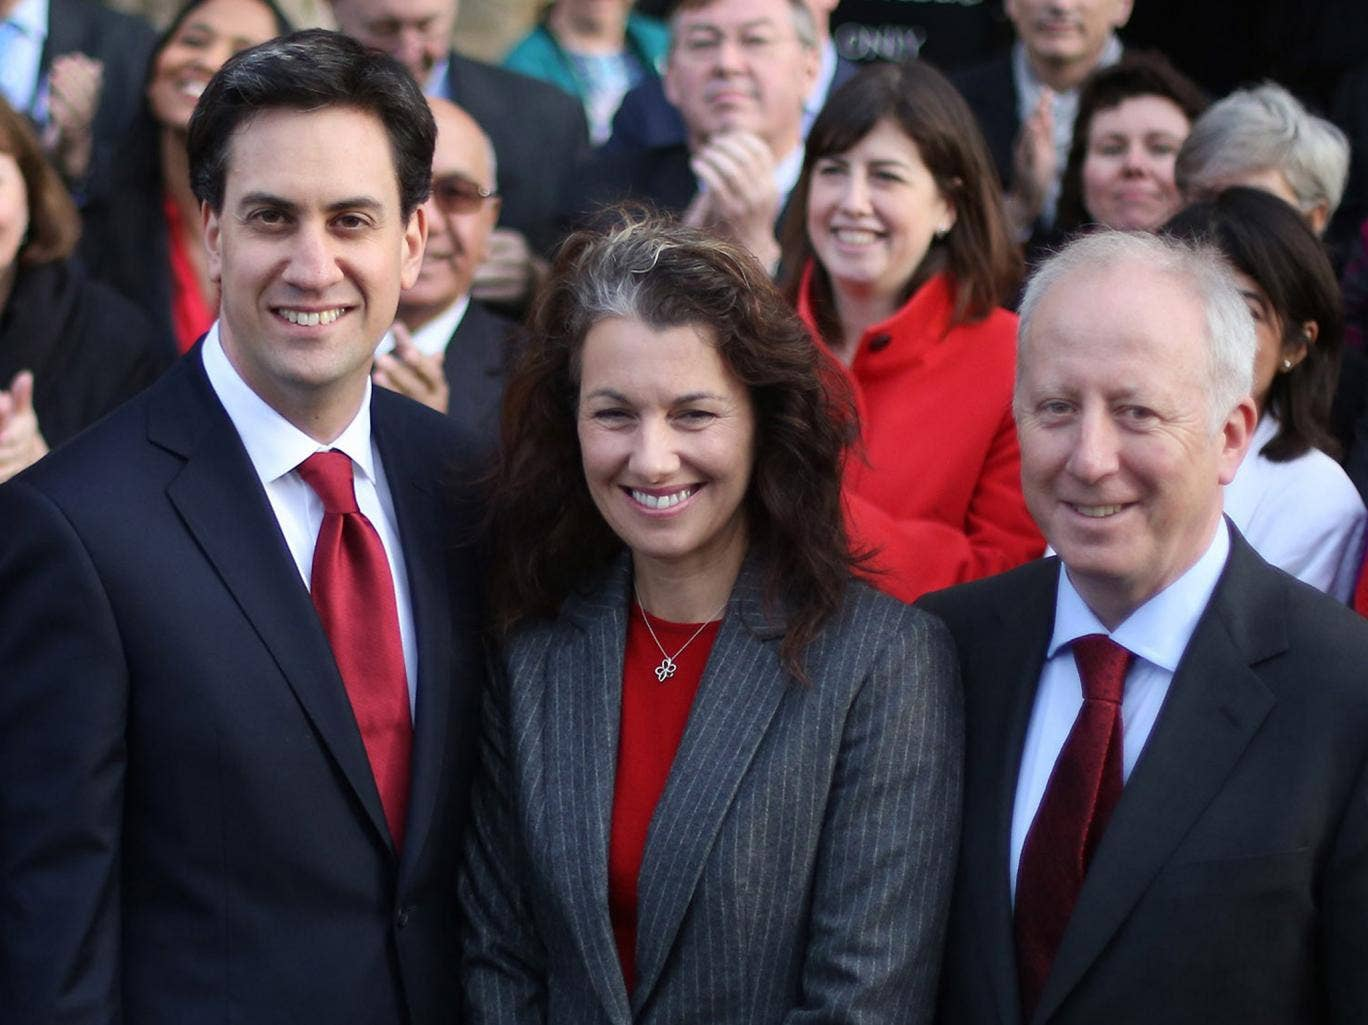 Ed Miliband, with two of last week's by-election victors, Sarah Champion and Andy McDonald